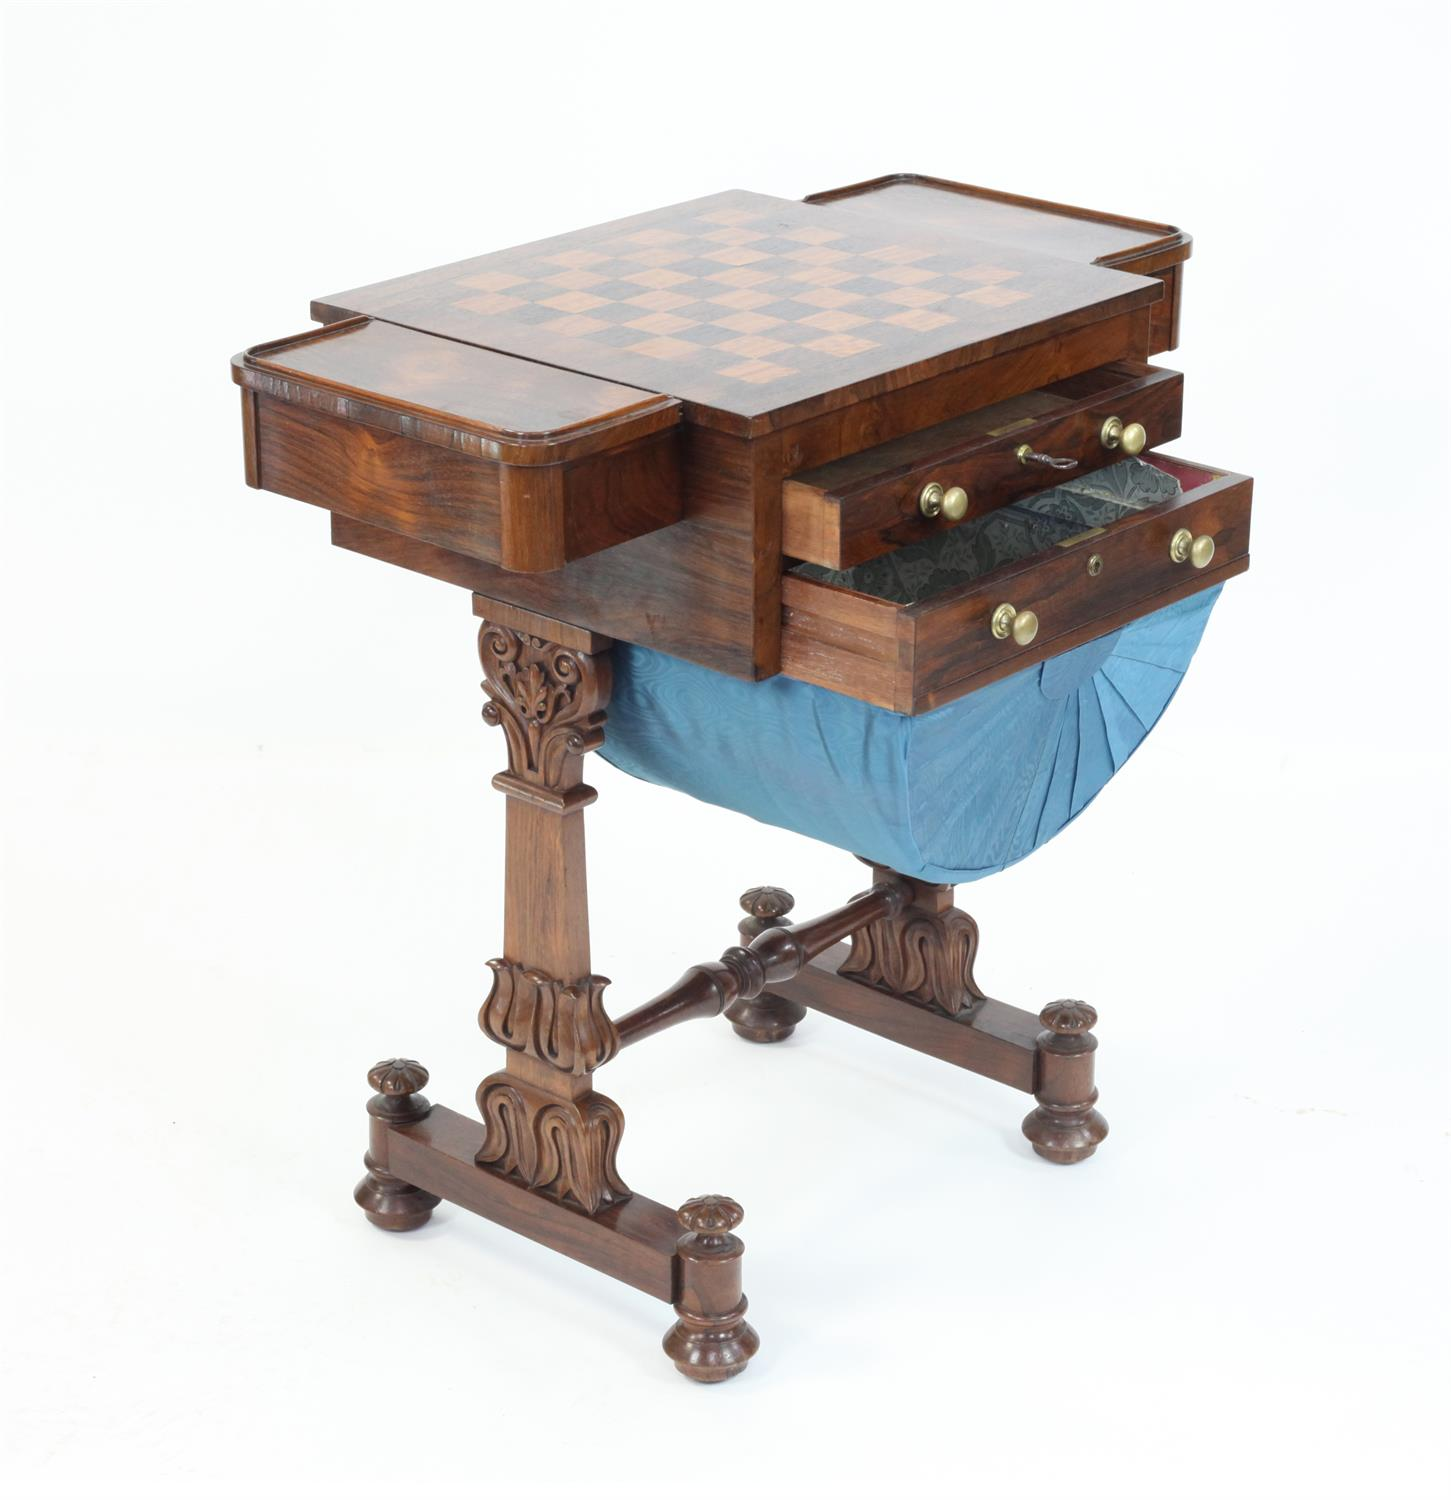 Early 19th Century rosewood games and work table with chessboard top flanked by drawers over - Image 3 of 5